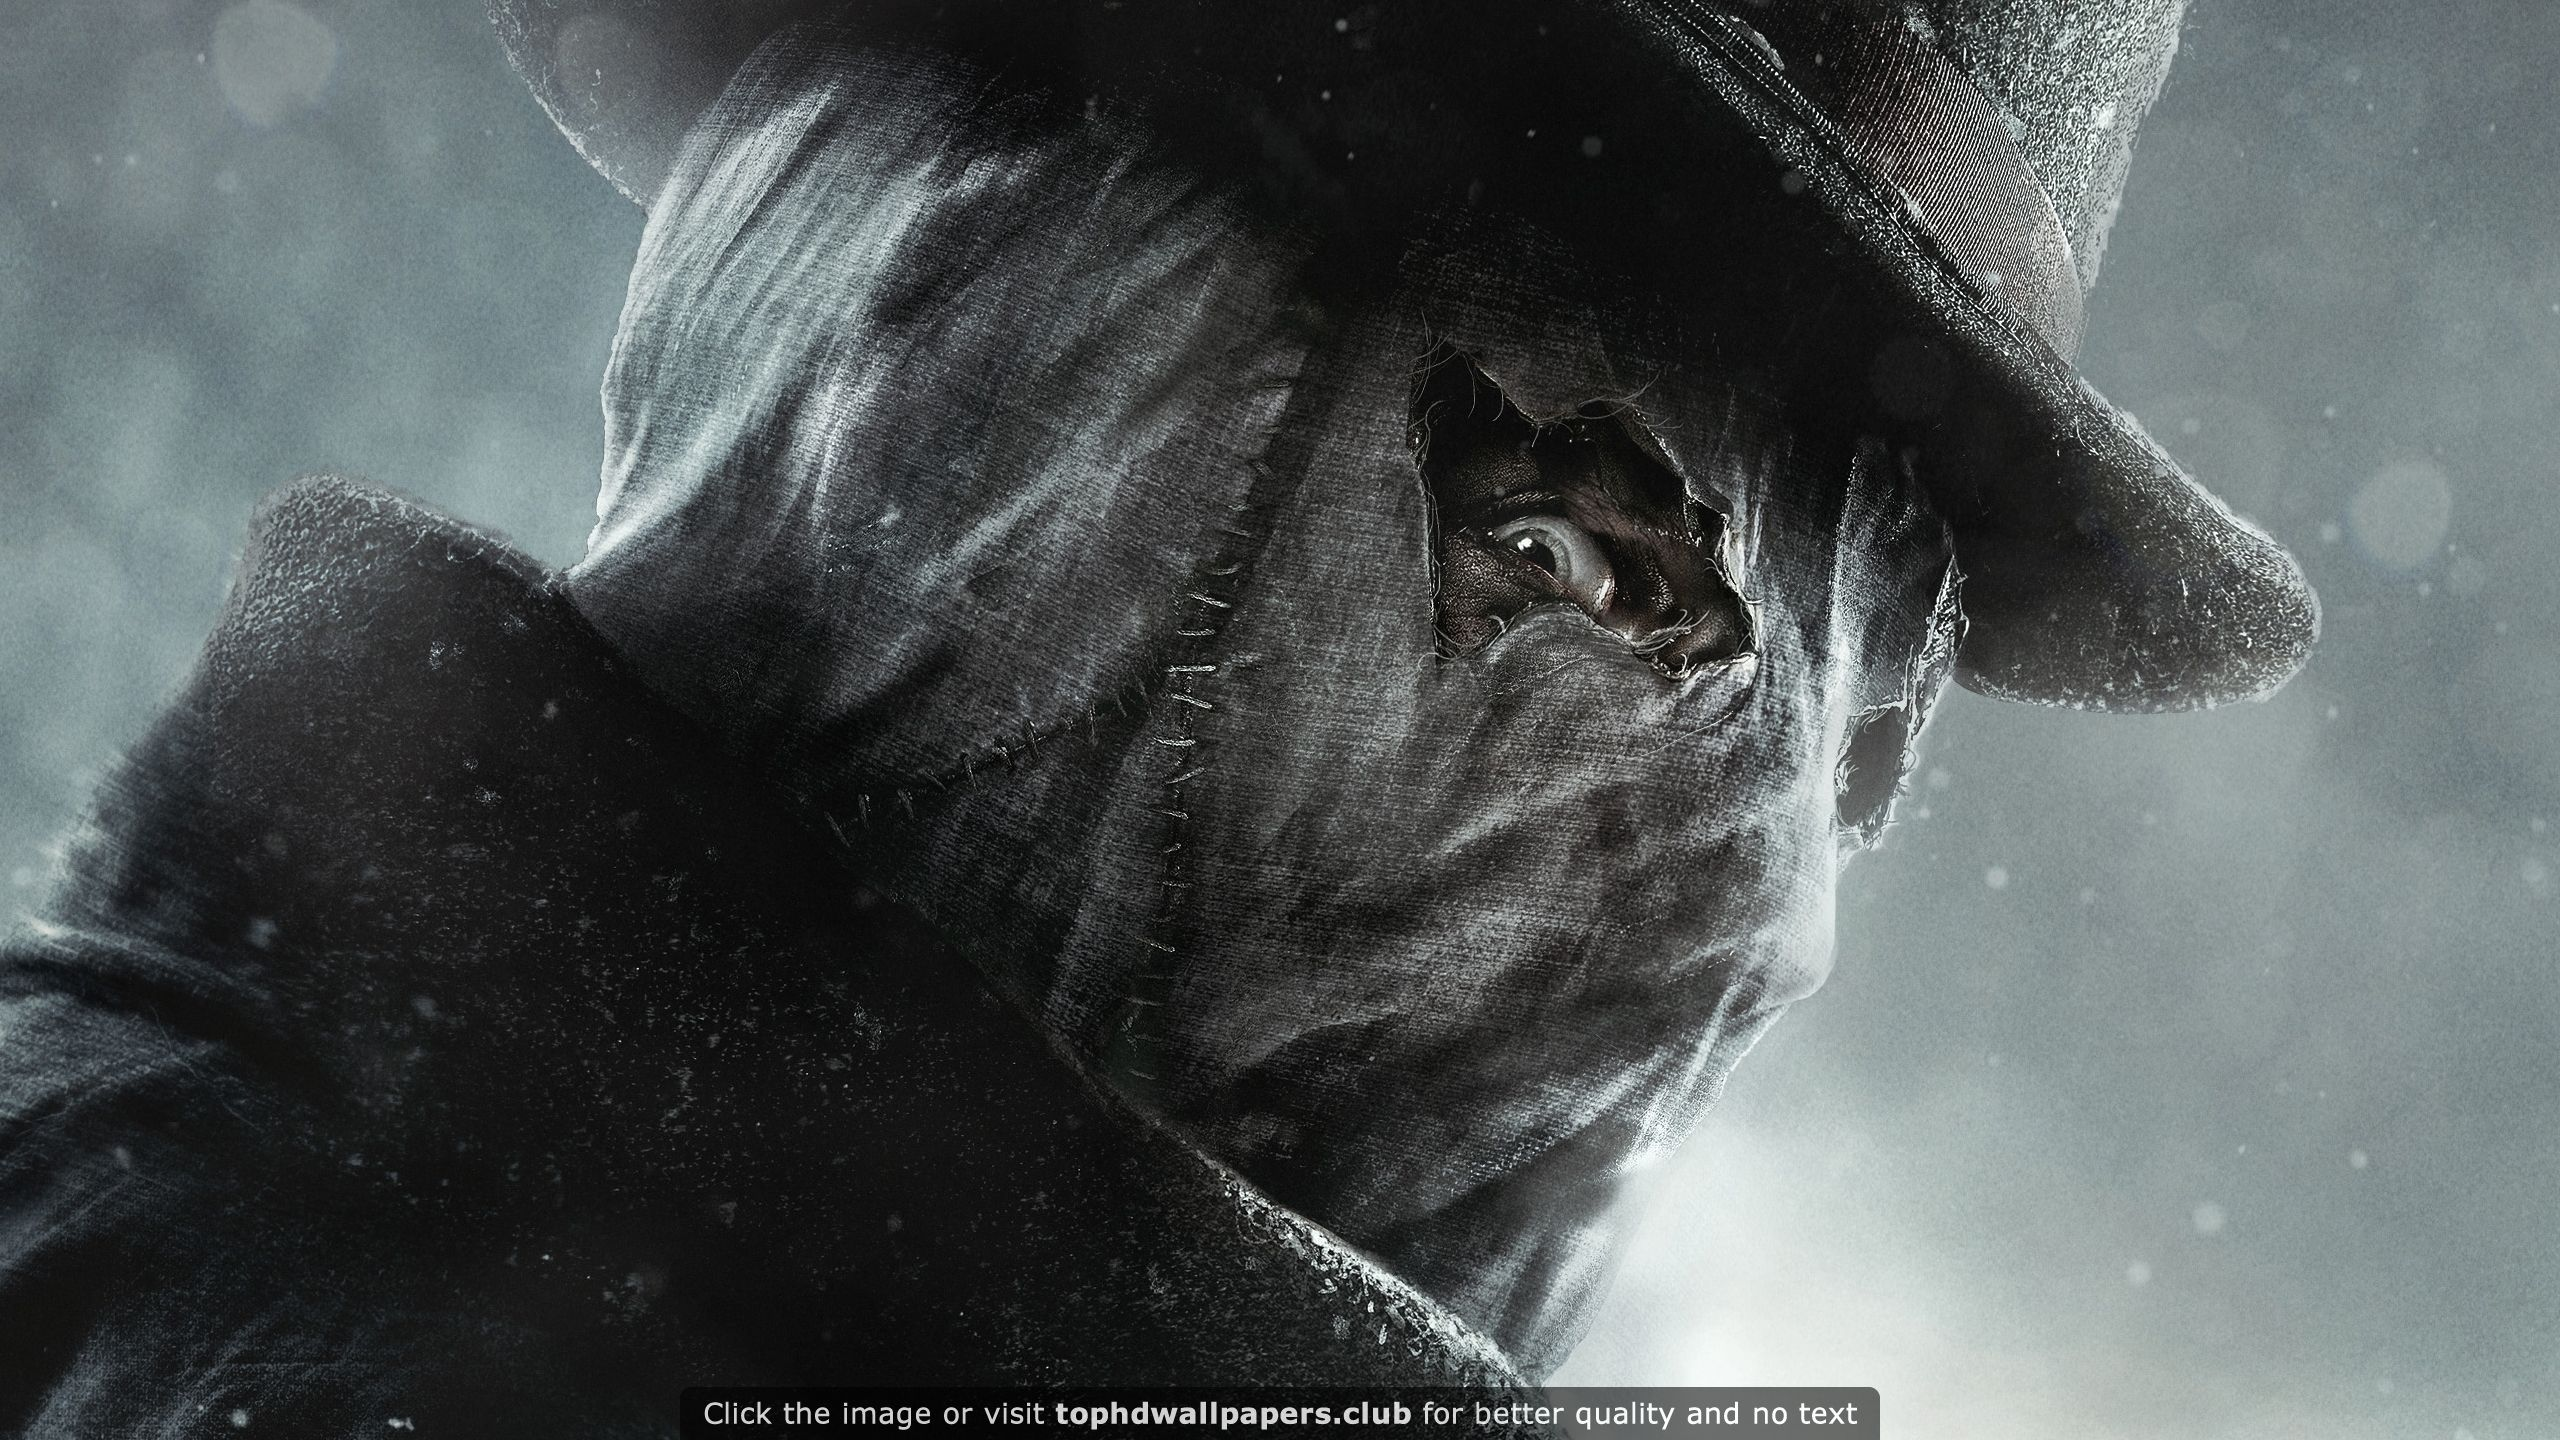 Jack The Ripper Hd Wallpaper For Your Pc Mac Or Mobile Device Assassins Creed Syndicate Syndicate Game Assassin